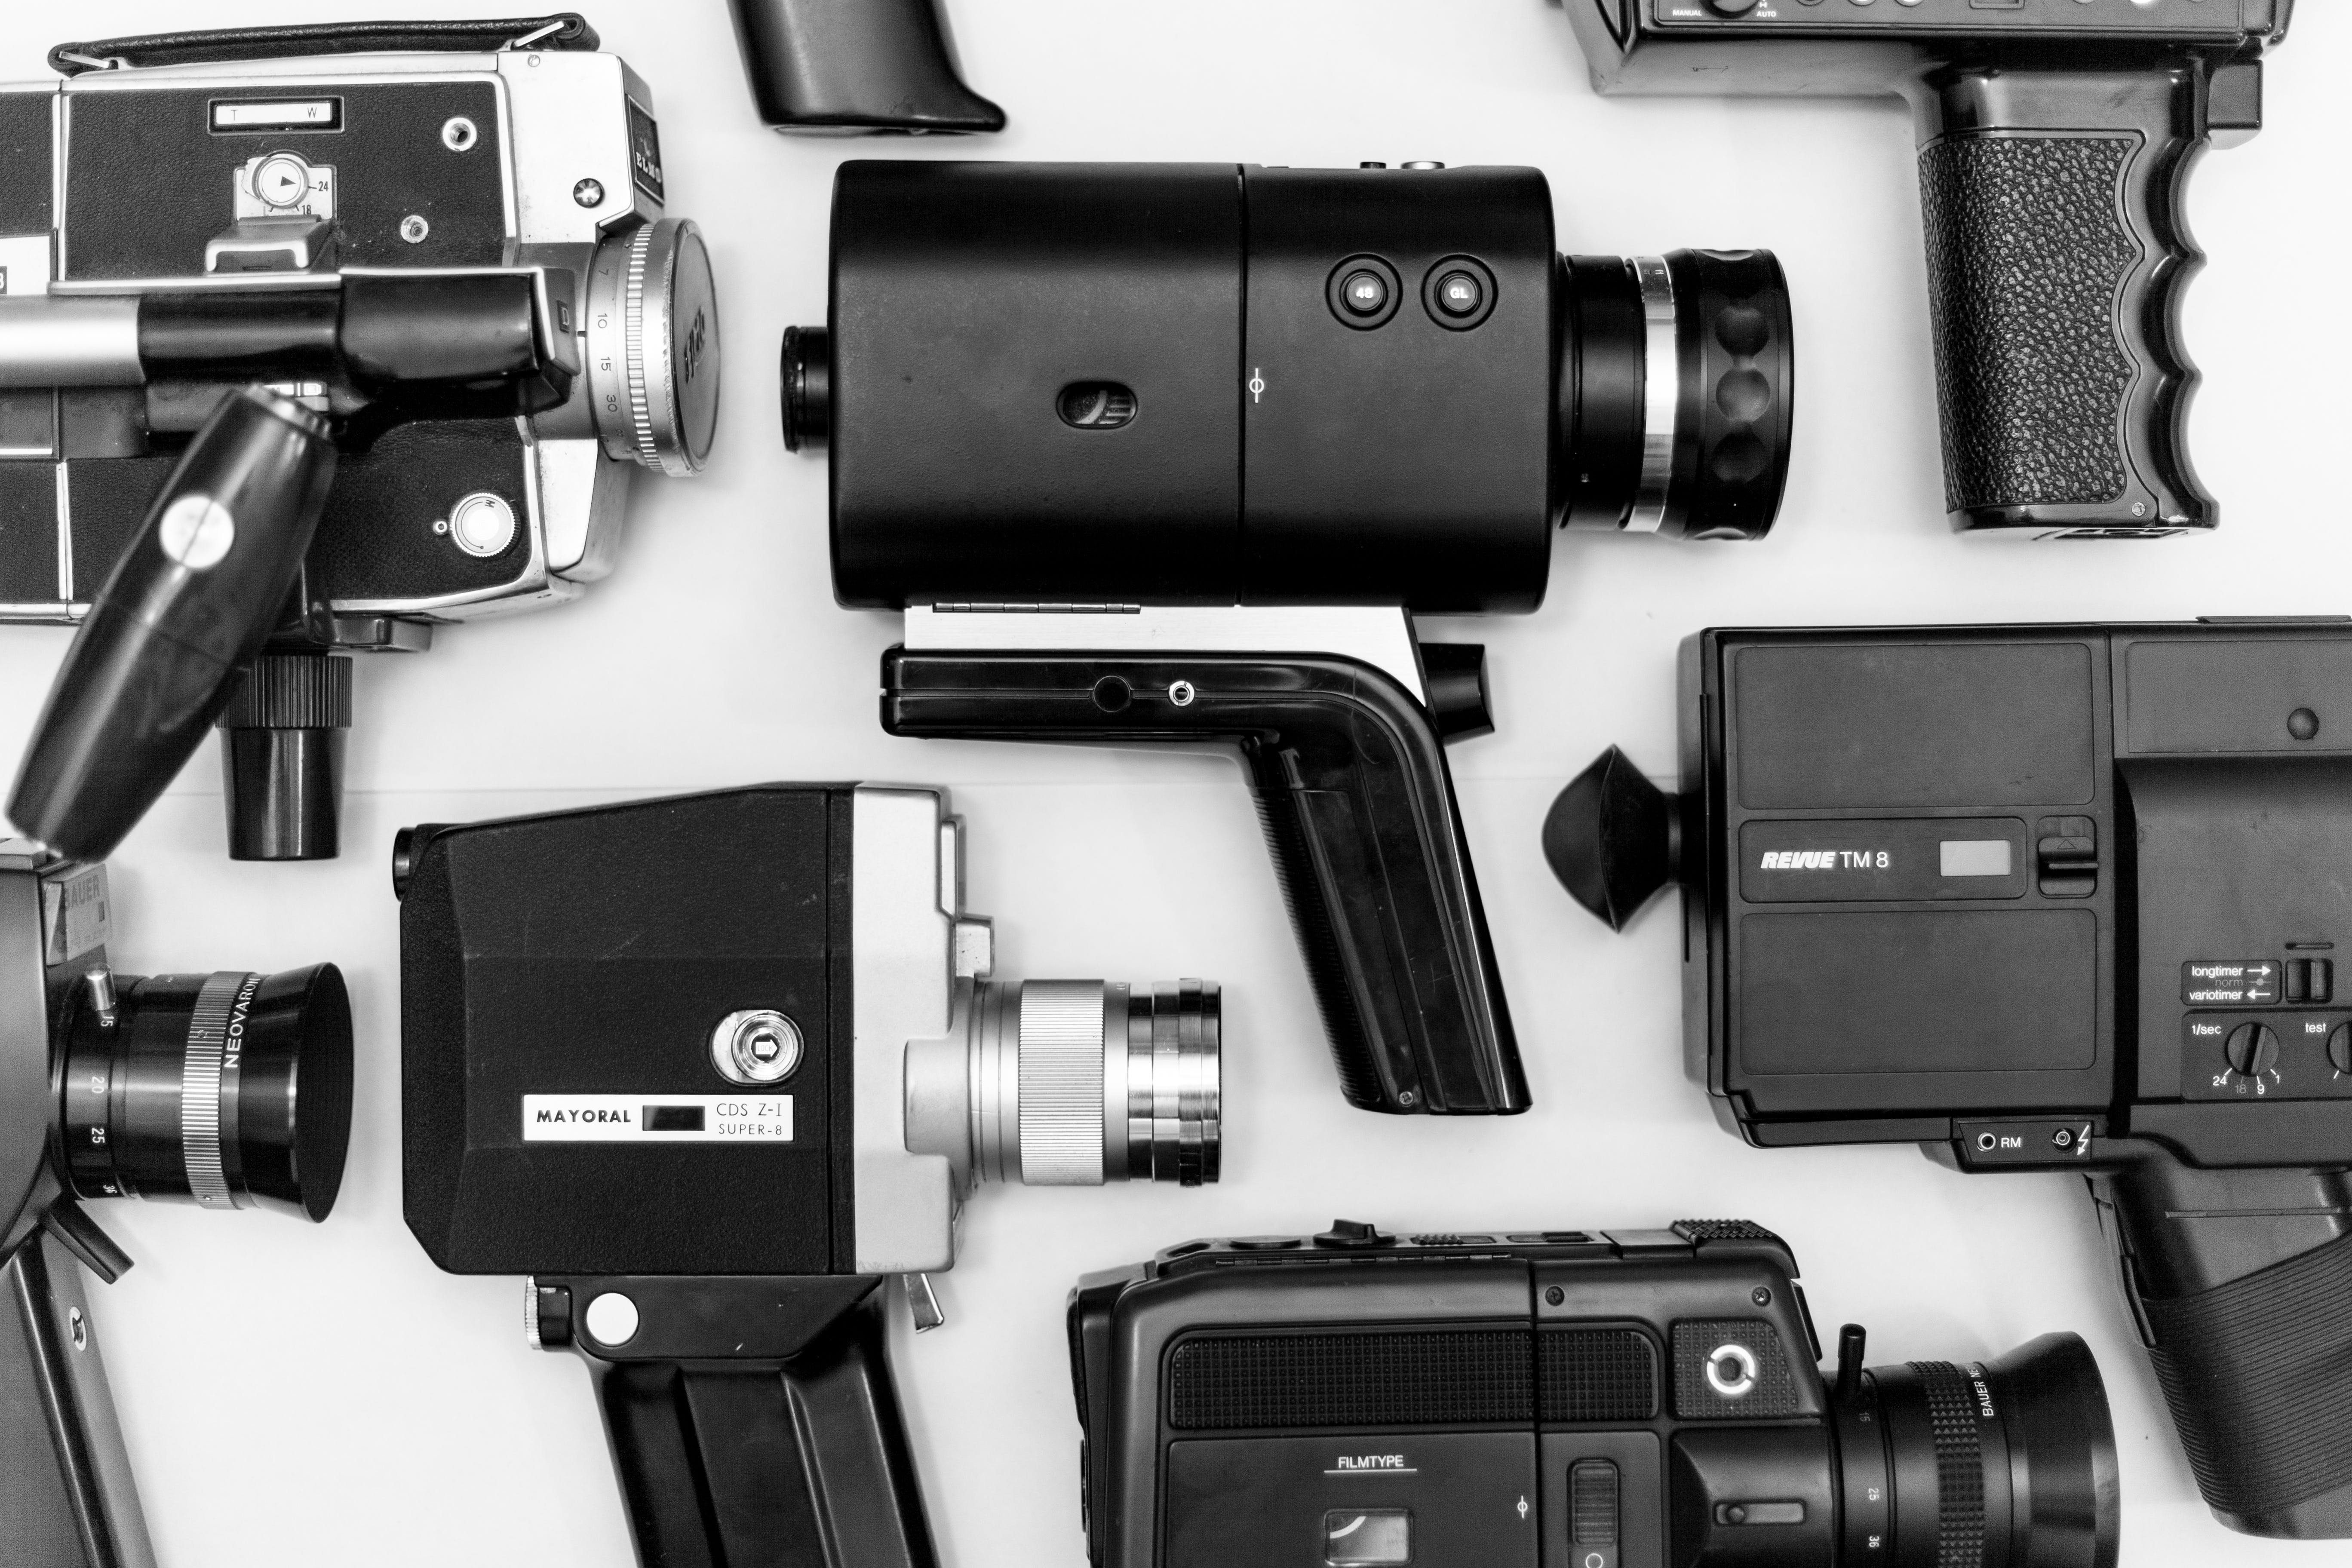 Assorted Camera Lot on Surface in Grayscale Photo